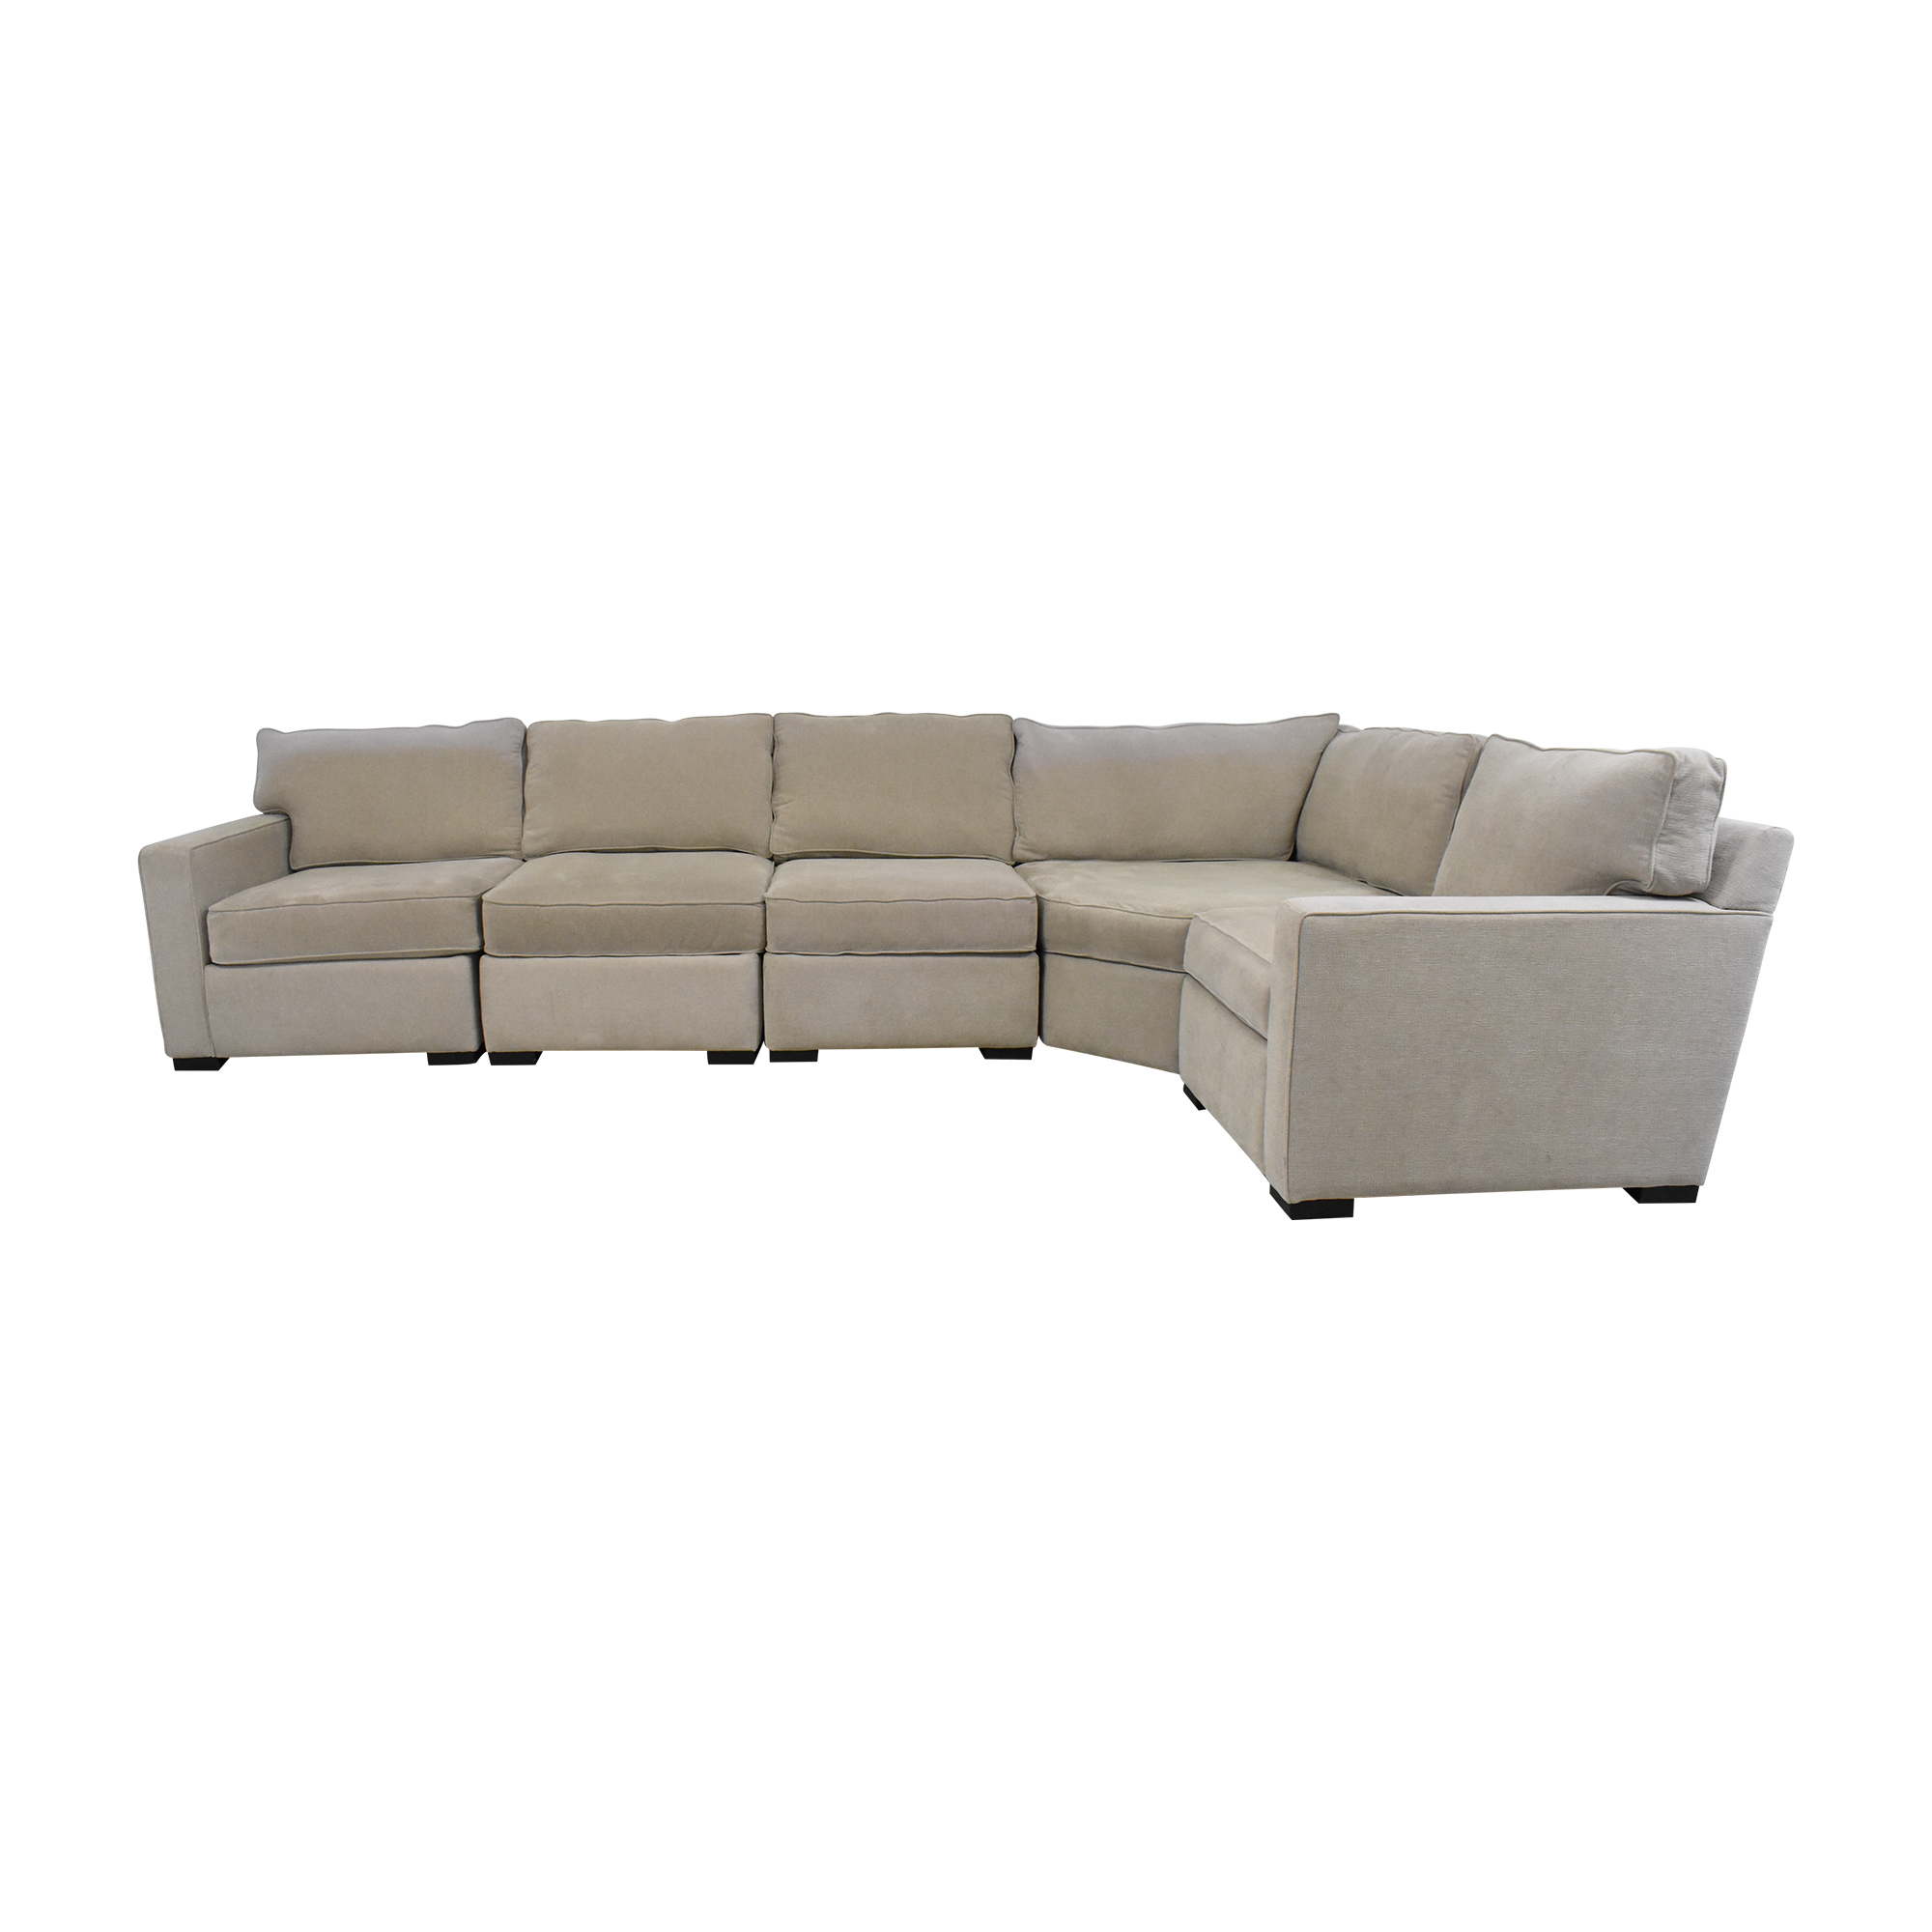 Macy's Macy's L Shaped Sectional Sofa for sale